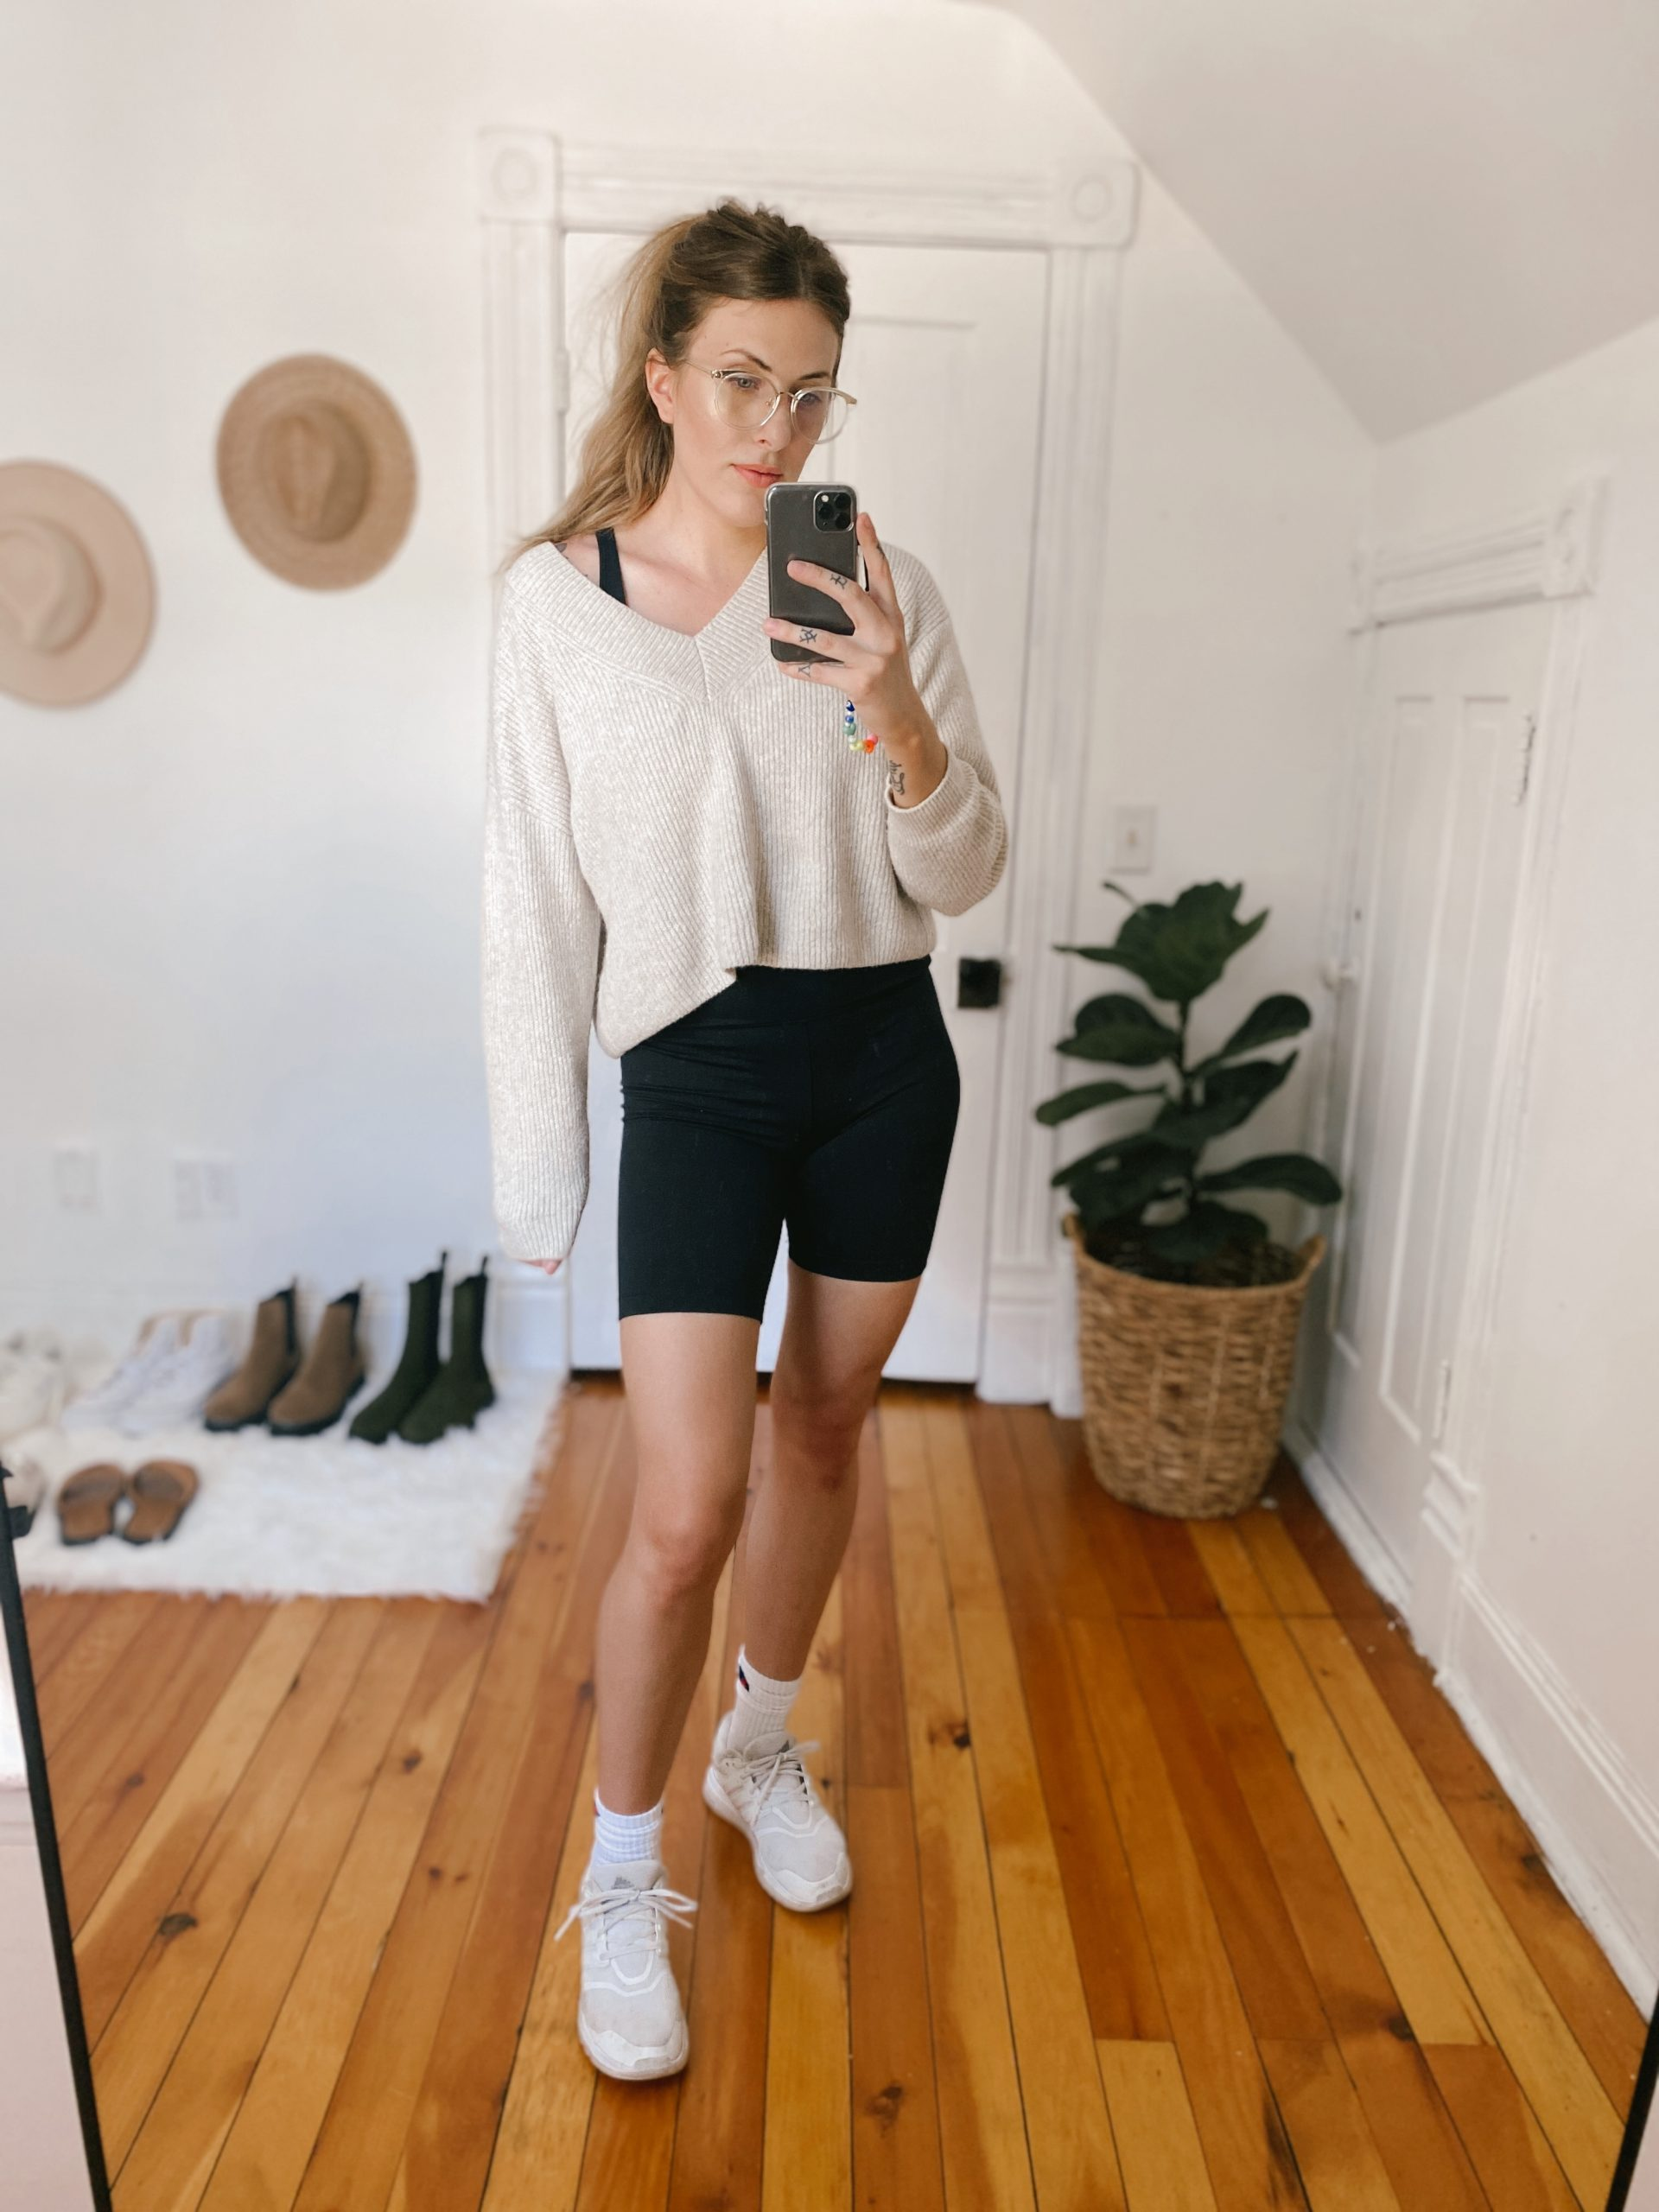 The Open Edit V-neck sweater is the softest 1 I tried in the #NSale. It has a wonderful crop that works well with all my high-rise bottoms. Under $45 & available in 4 colors.